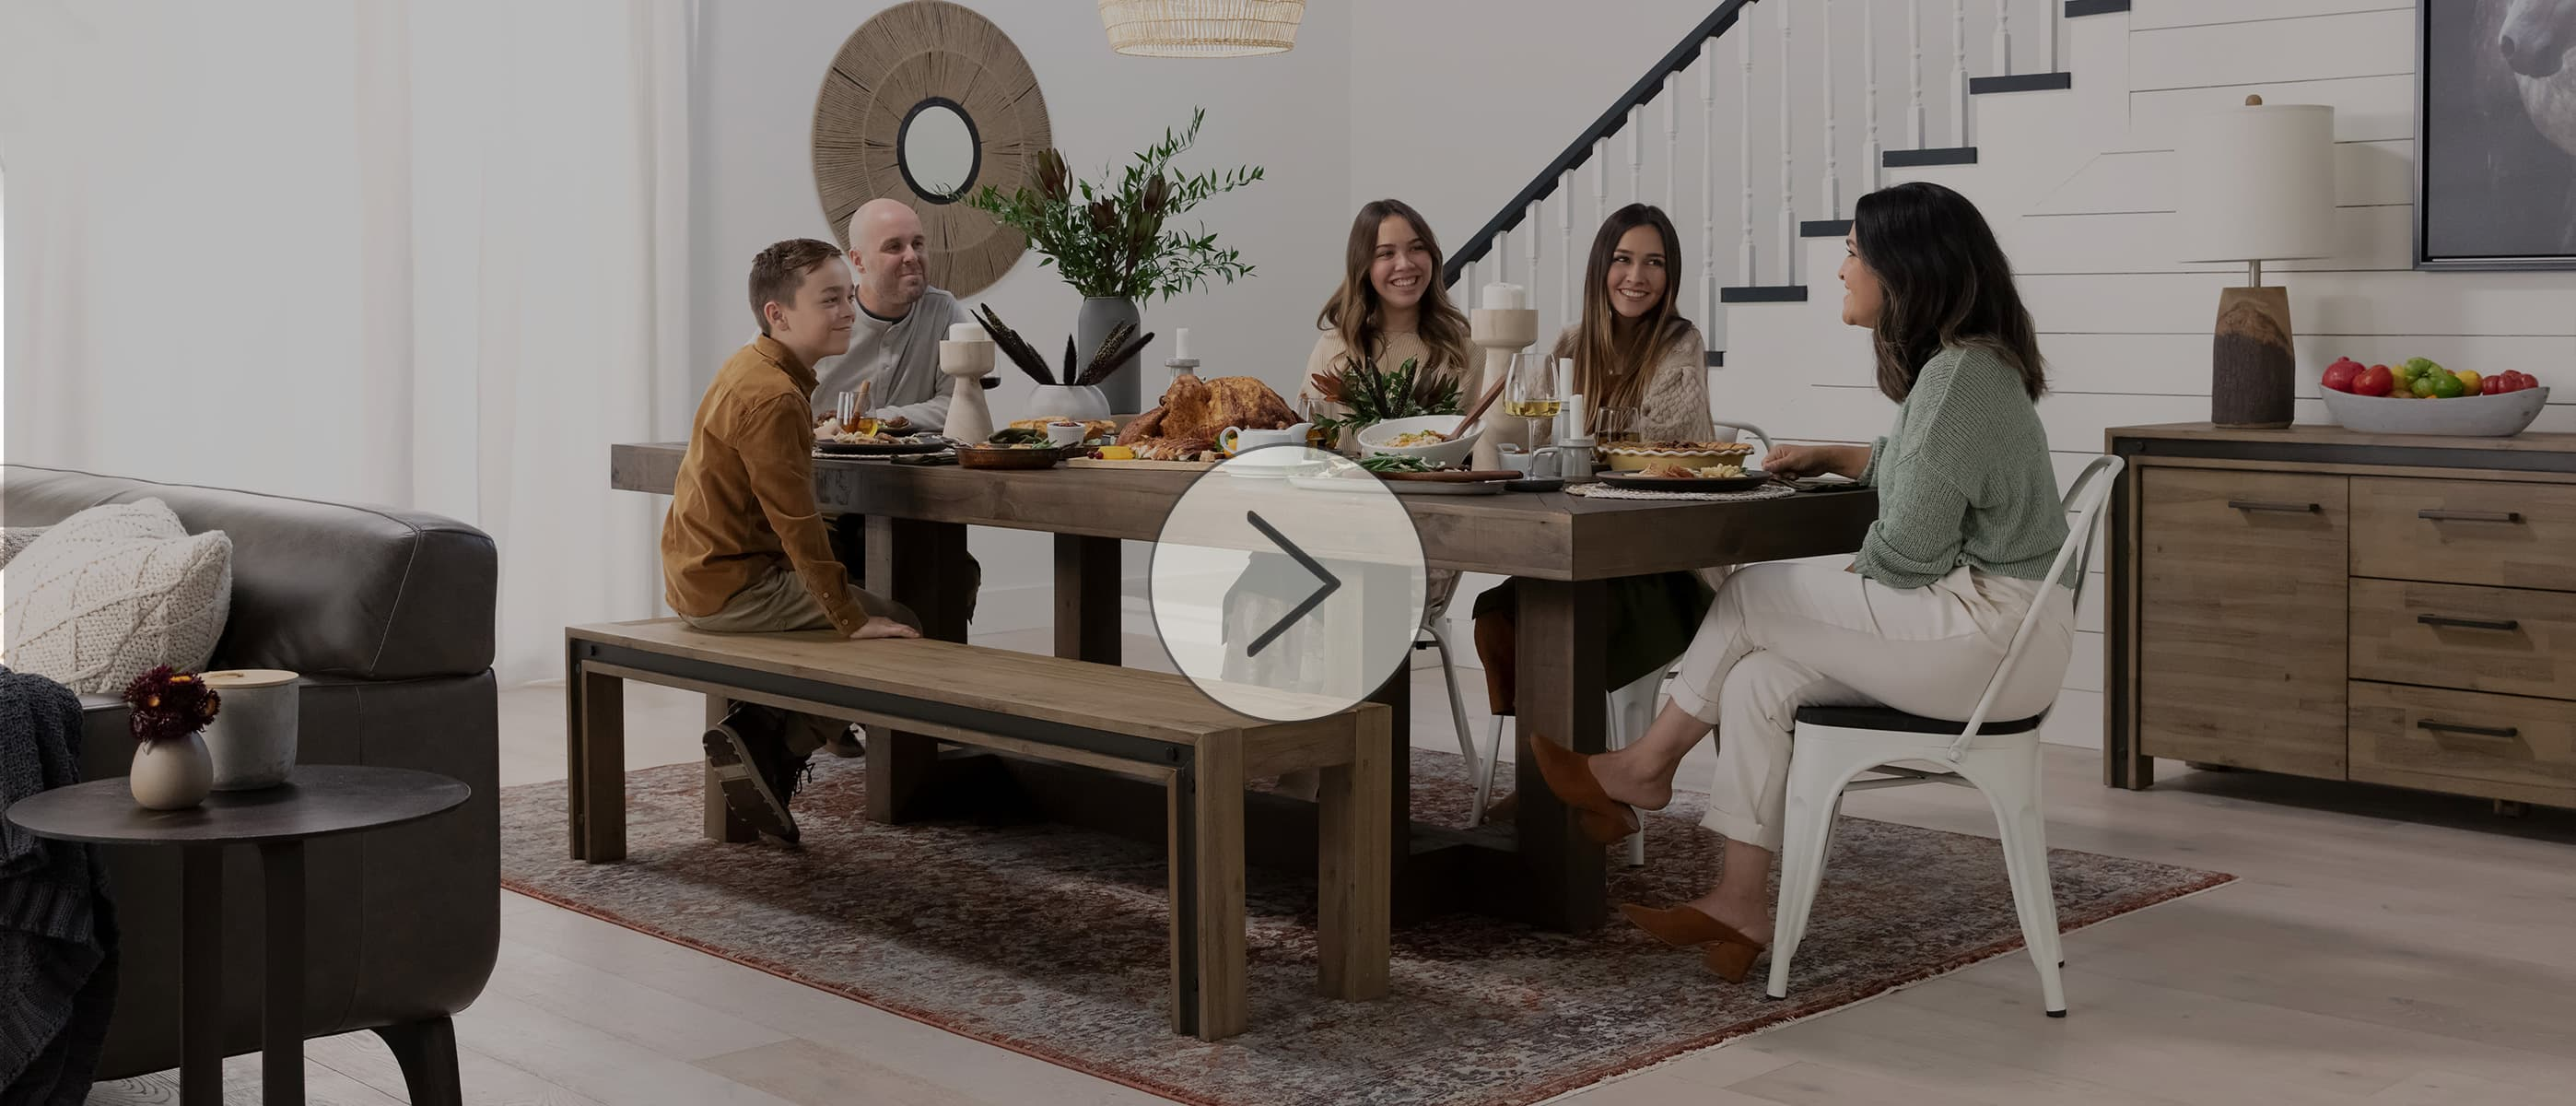 Watch our Thanksgiving Commercial